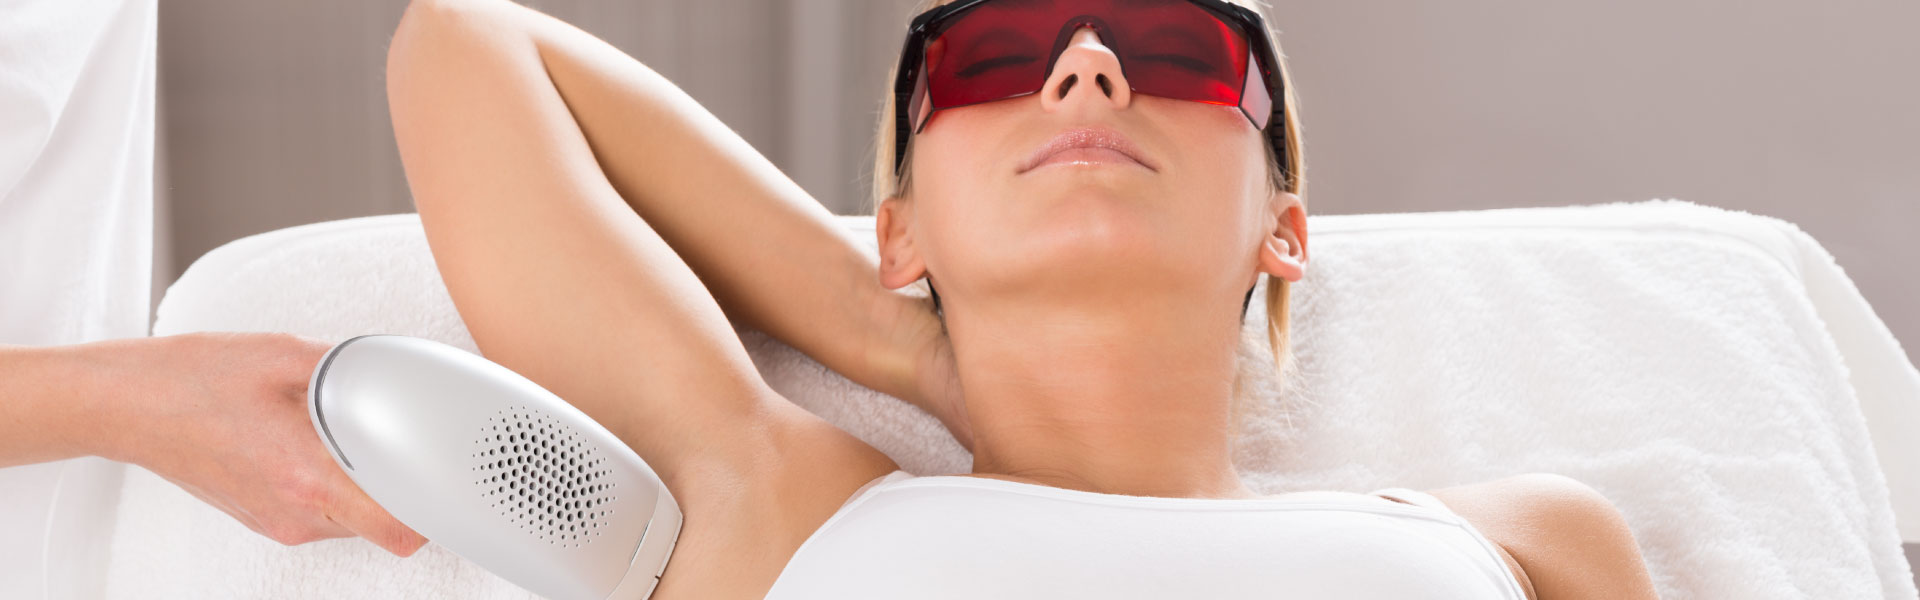 Cheshire Aesthetic Clinic | Inch Loss, Skin Care and IPL Hair Removal | IPL hair removal